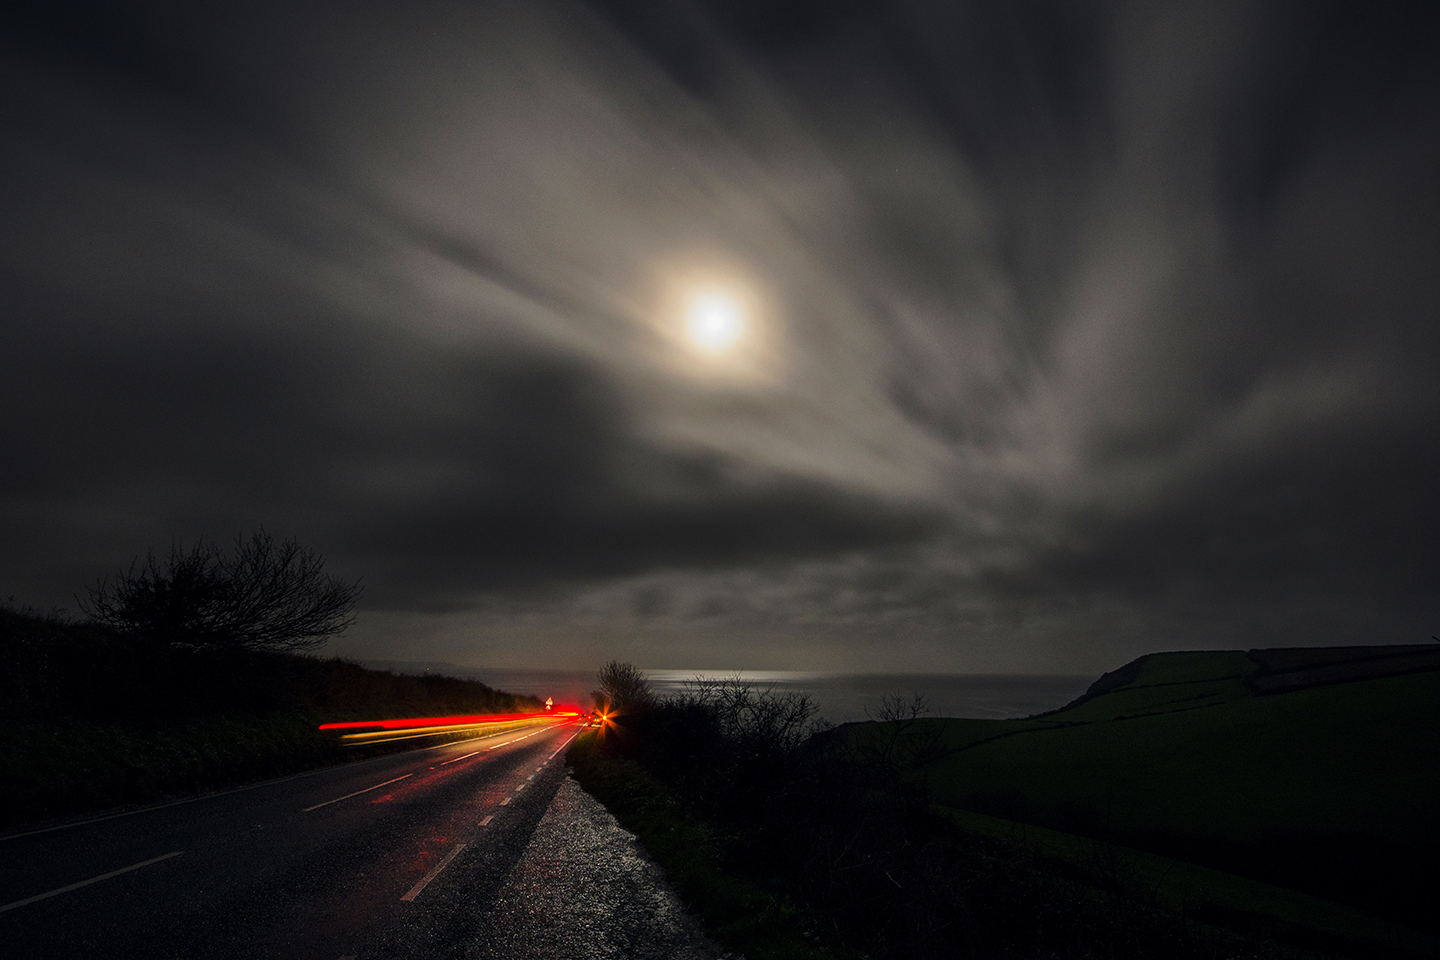 Road at night time with lights showing from cars and a full moon in the sky.